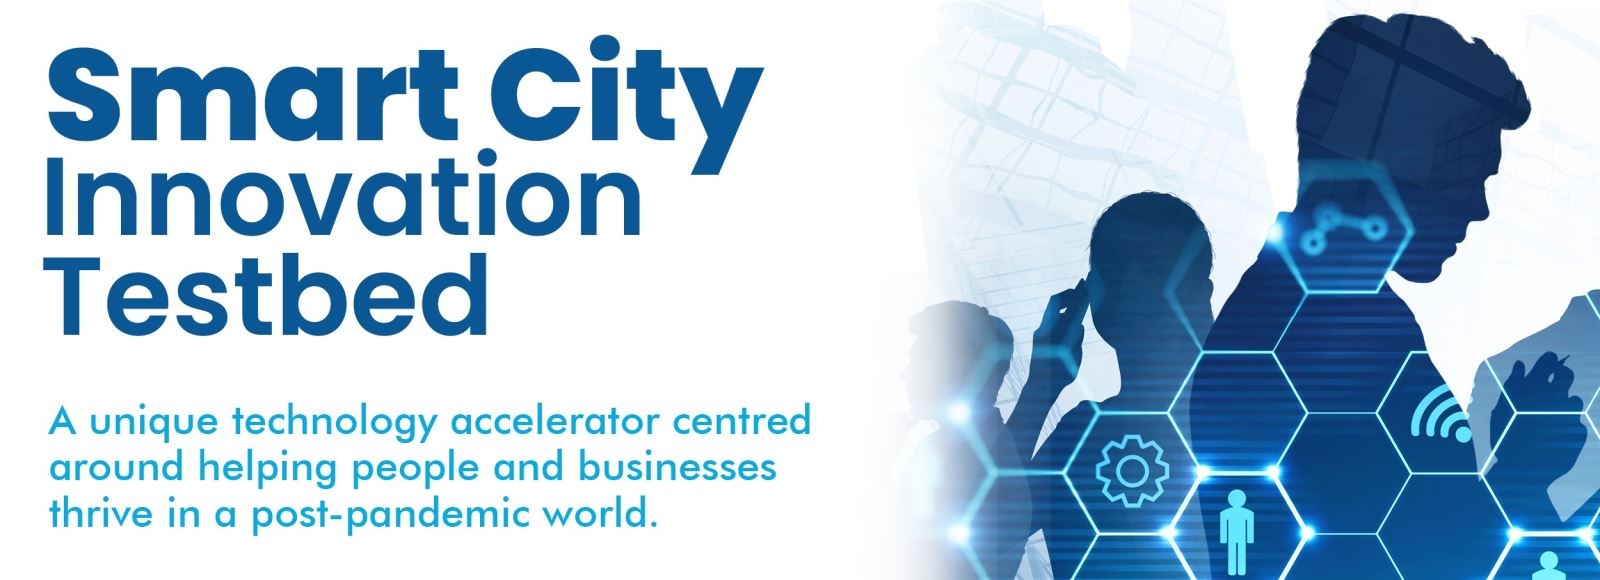 Smart city innovation testbed accelerator